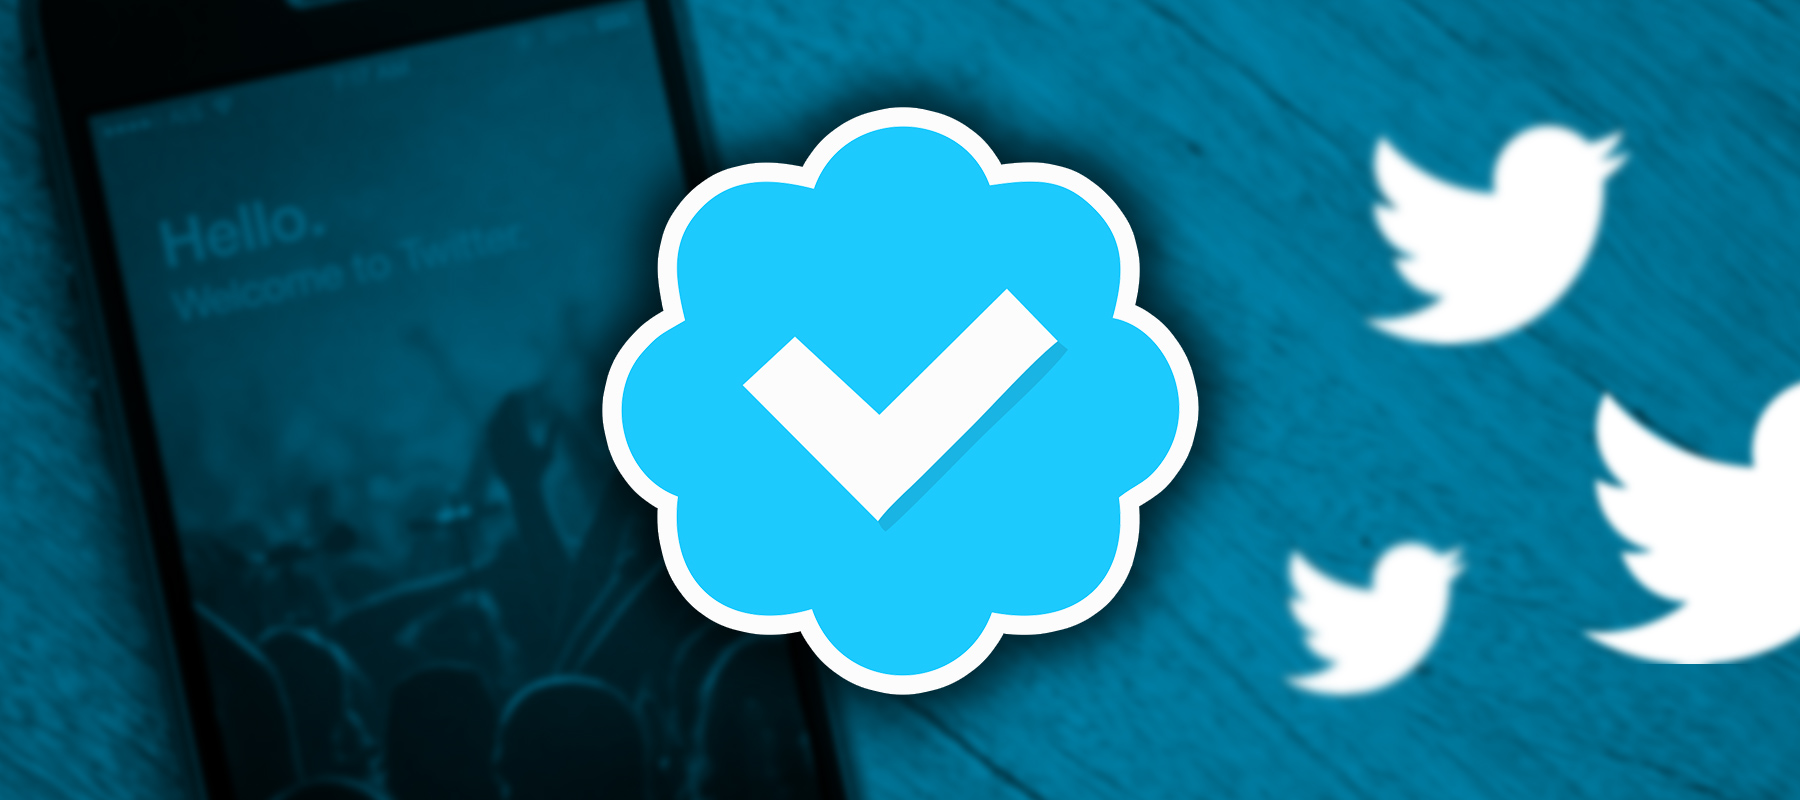 Twitter Verification: Get Your Account The Blue Badge - Fifteen